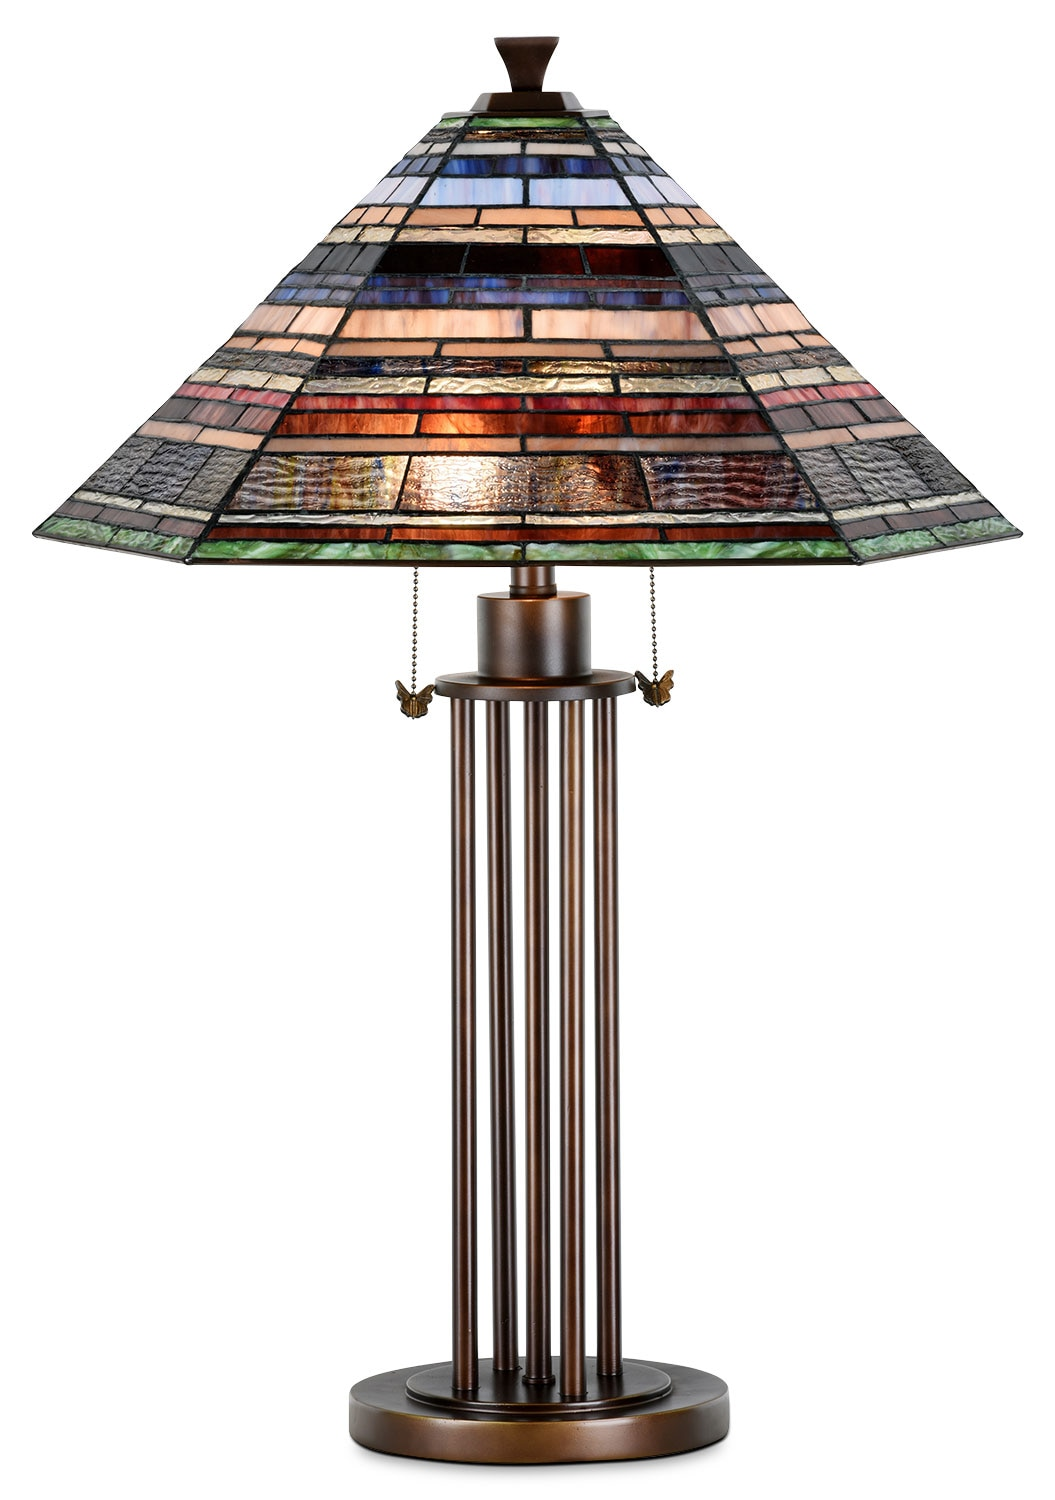 Las Brisas Table Lamp